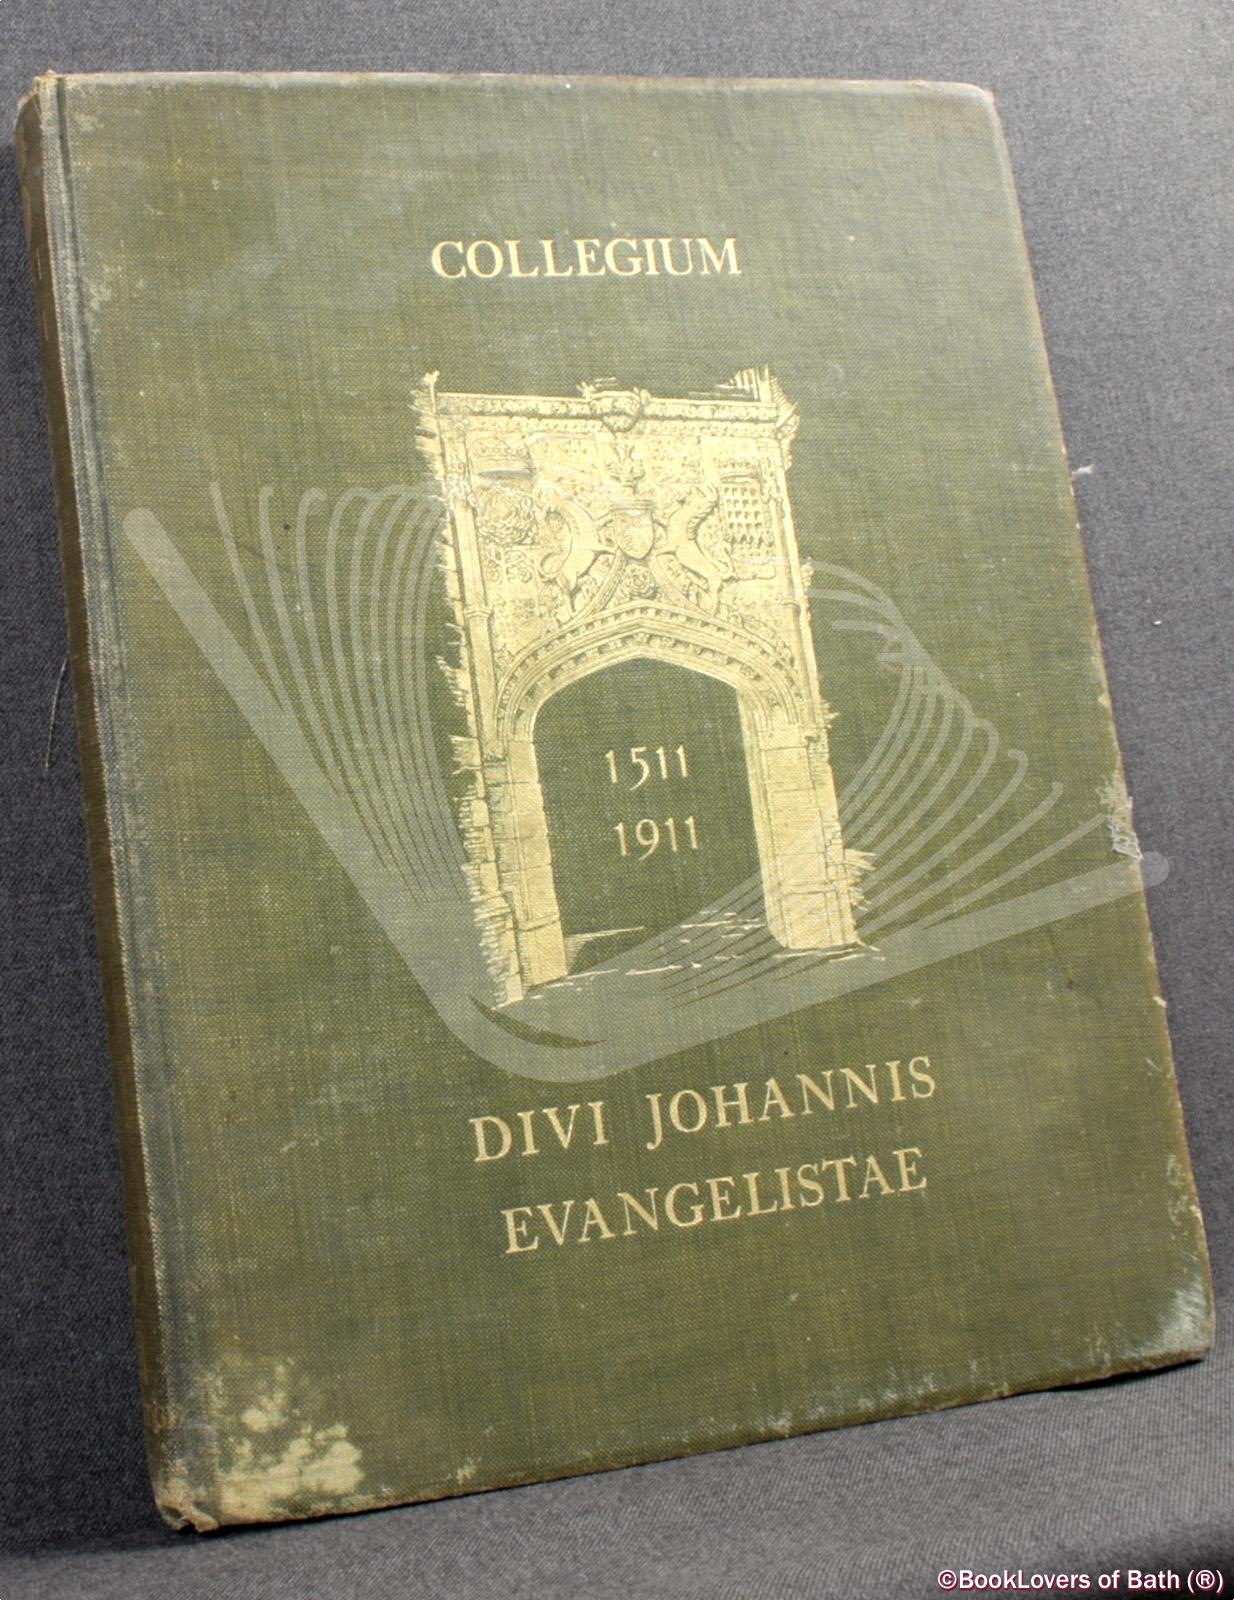 Collegium Divi Johannis Evangelistae, 1511-1911 - Edited by Professor Seward